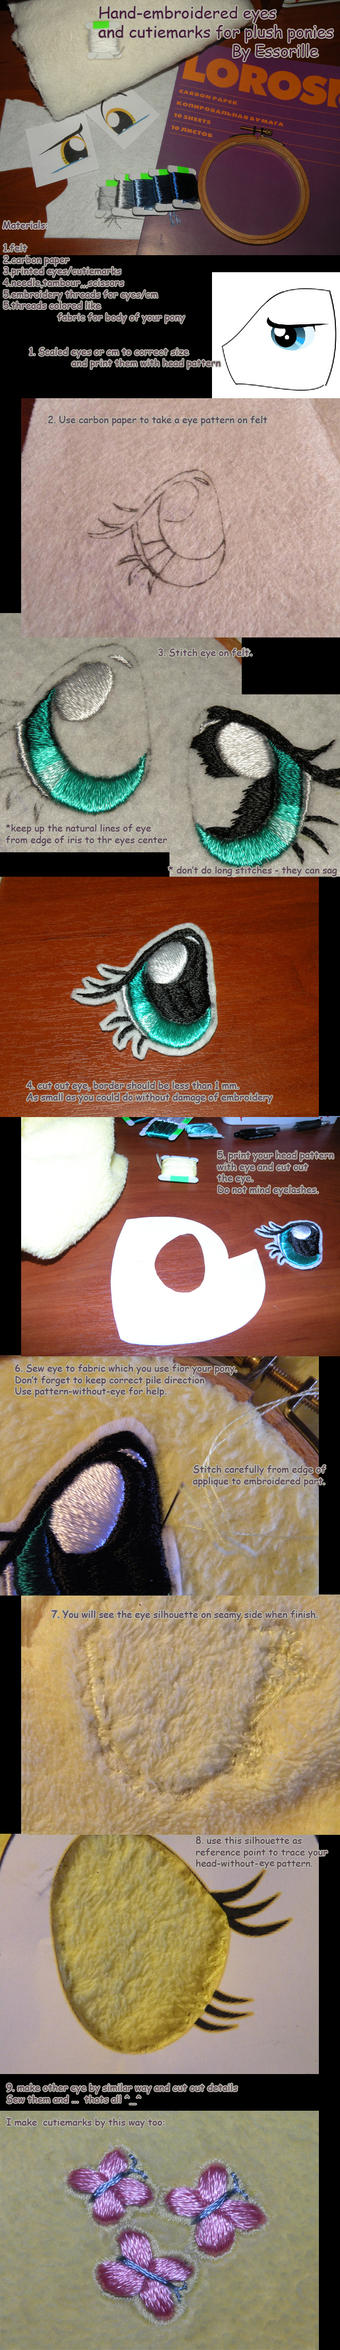 Handembroidered Plush Eyes Tutorial By Essorille